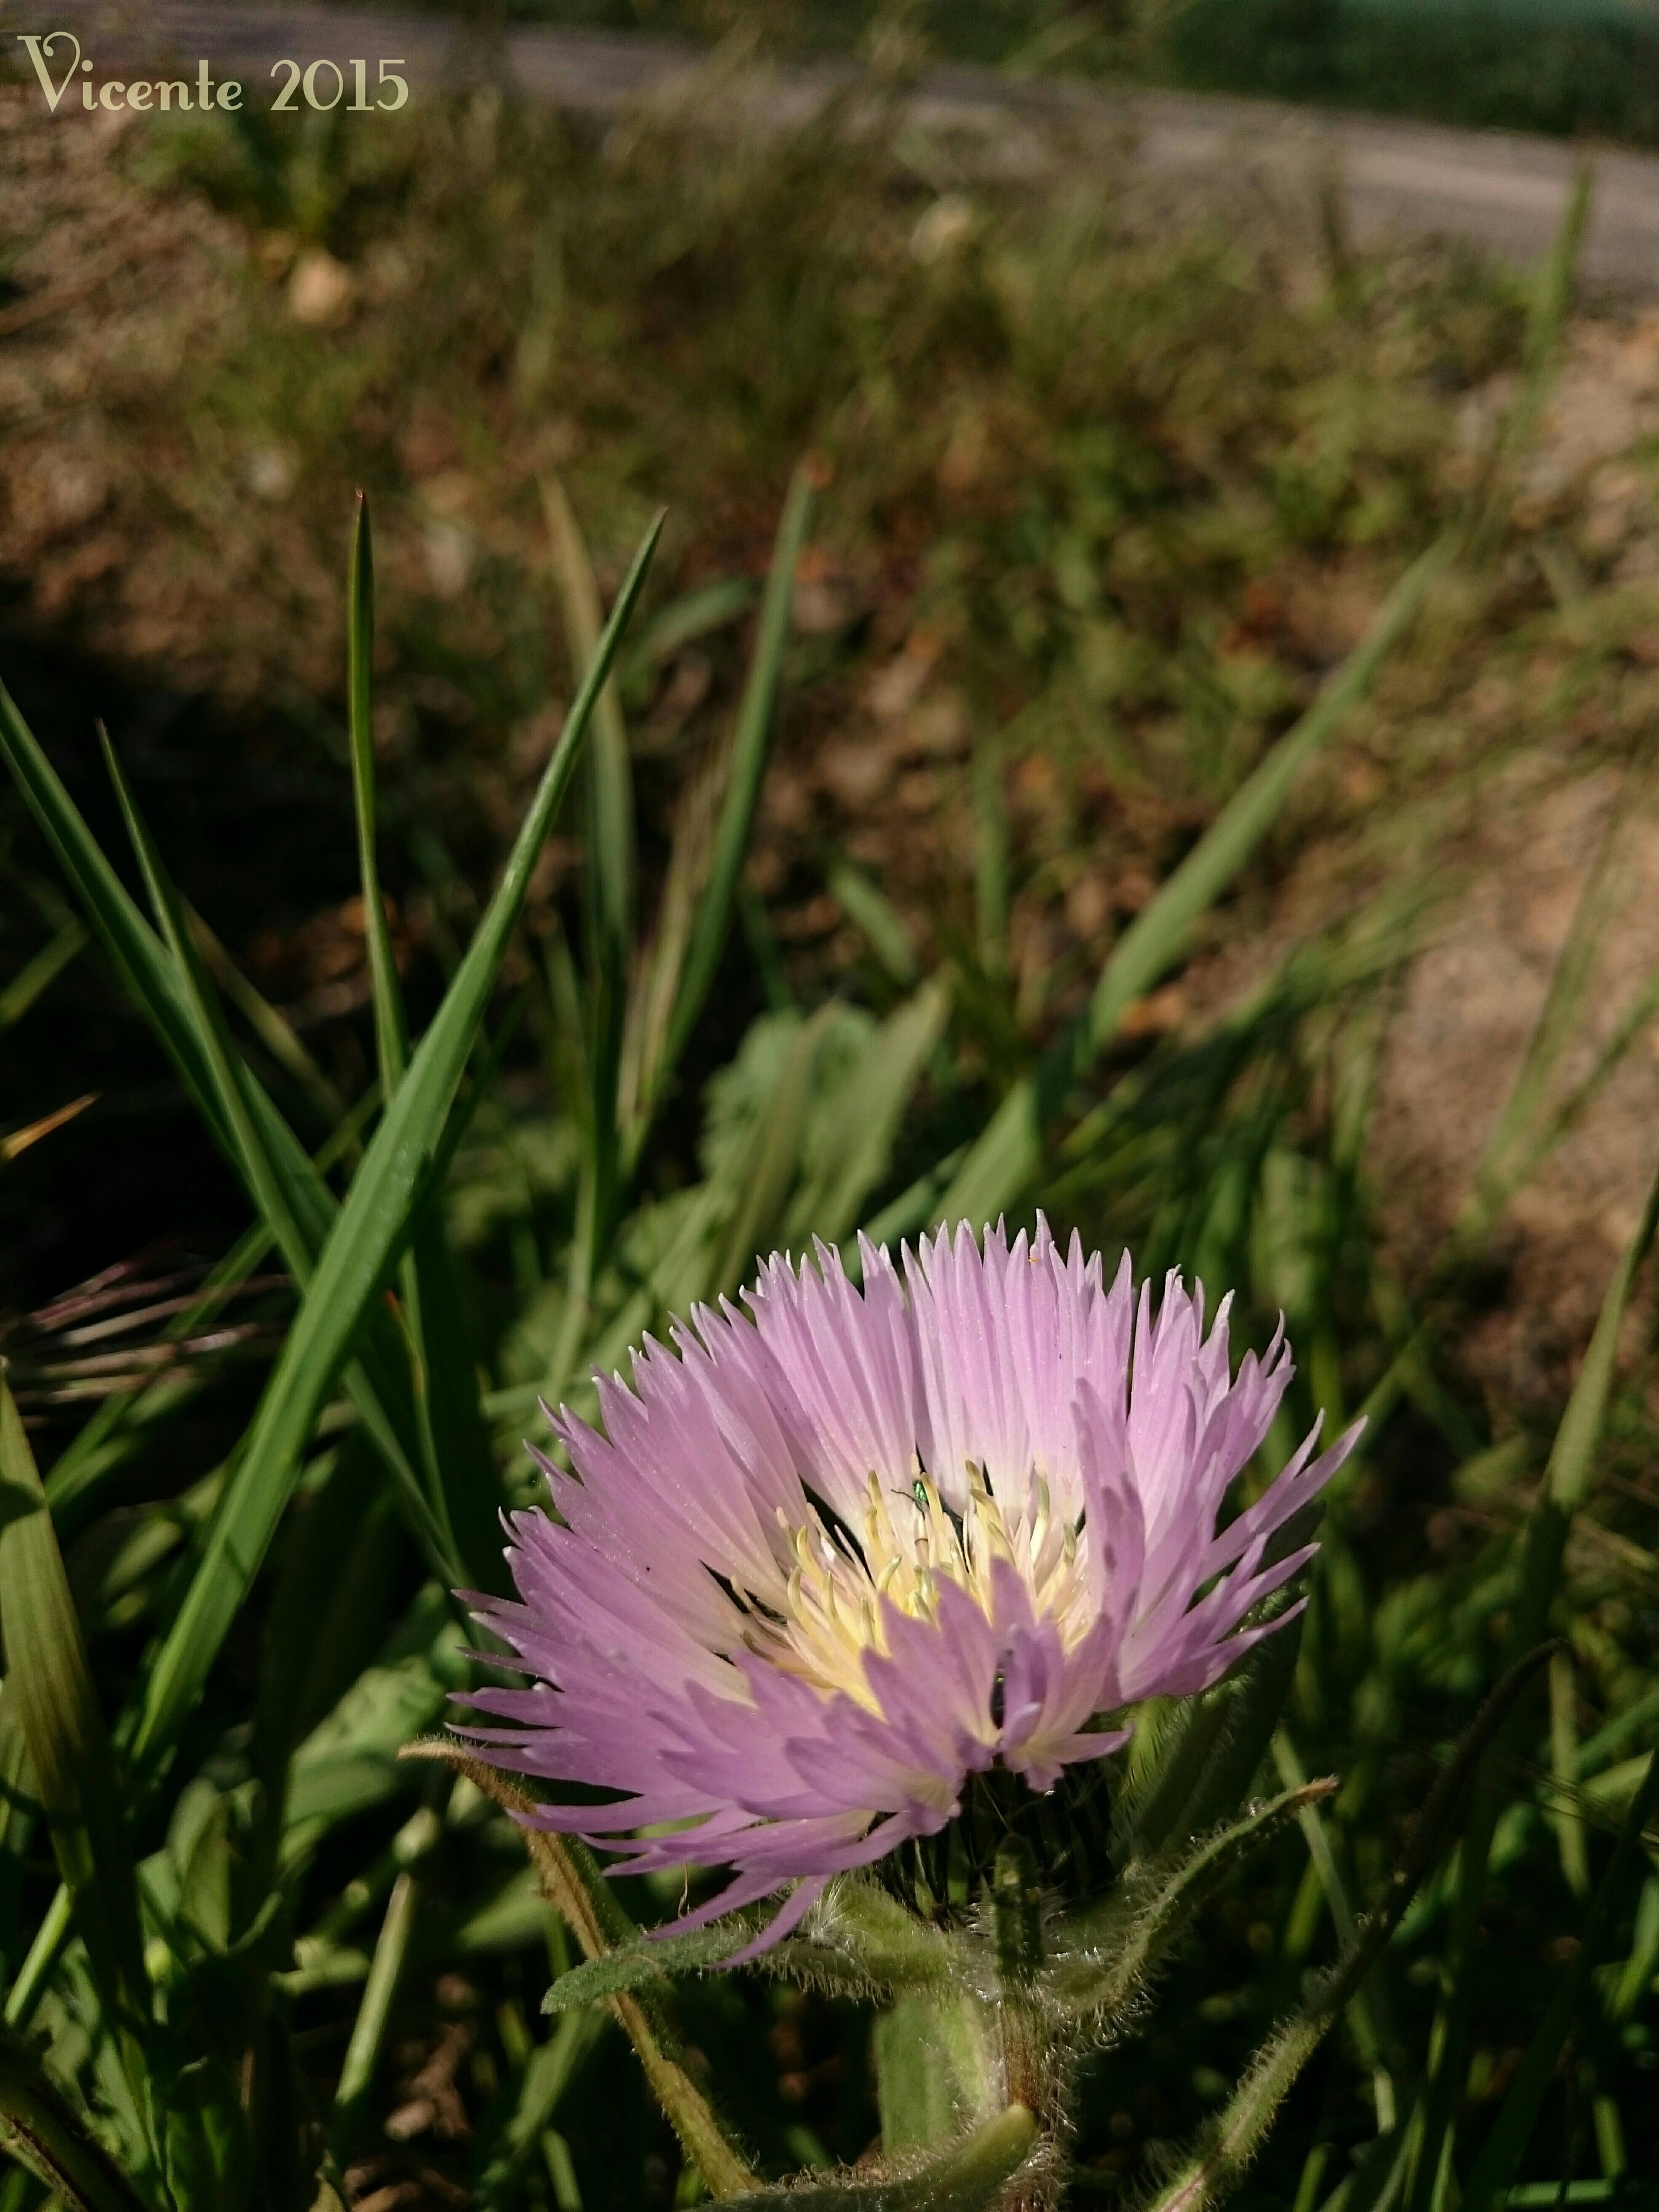 flower, freshness, fragility, petal, purple, growth, flower head, beauty in nature, blooming, nature, close-up, plant, pink color, focus on foreground, single flower, field, in bloom, blossom, outdoors, day